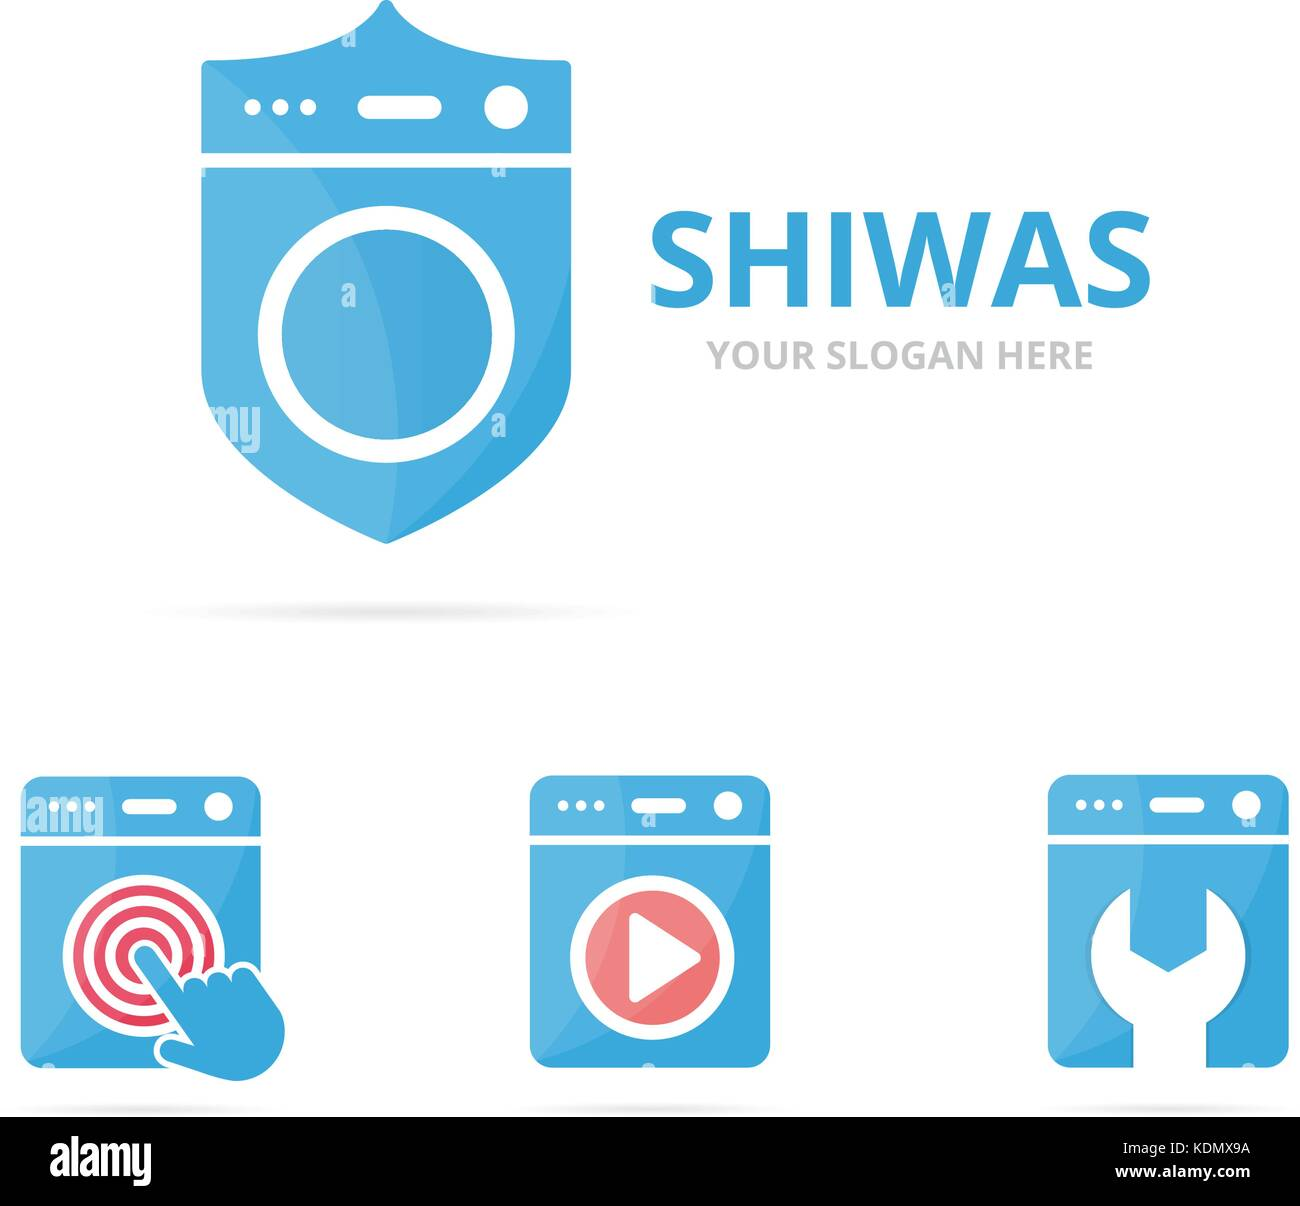 set of laundry logo combination washing machine and security symbol stock vector image art alamy alamy